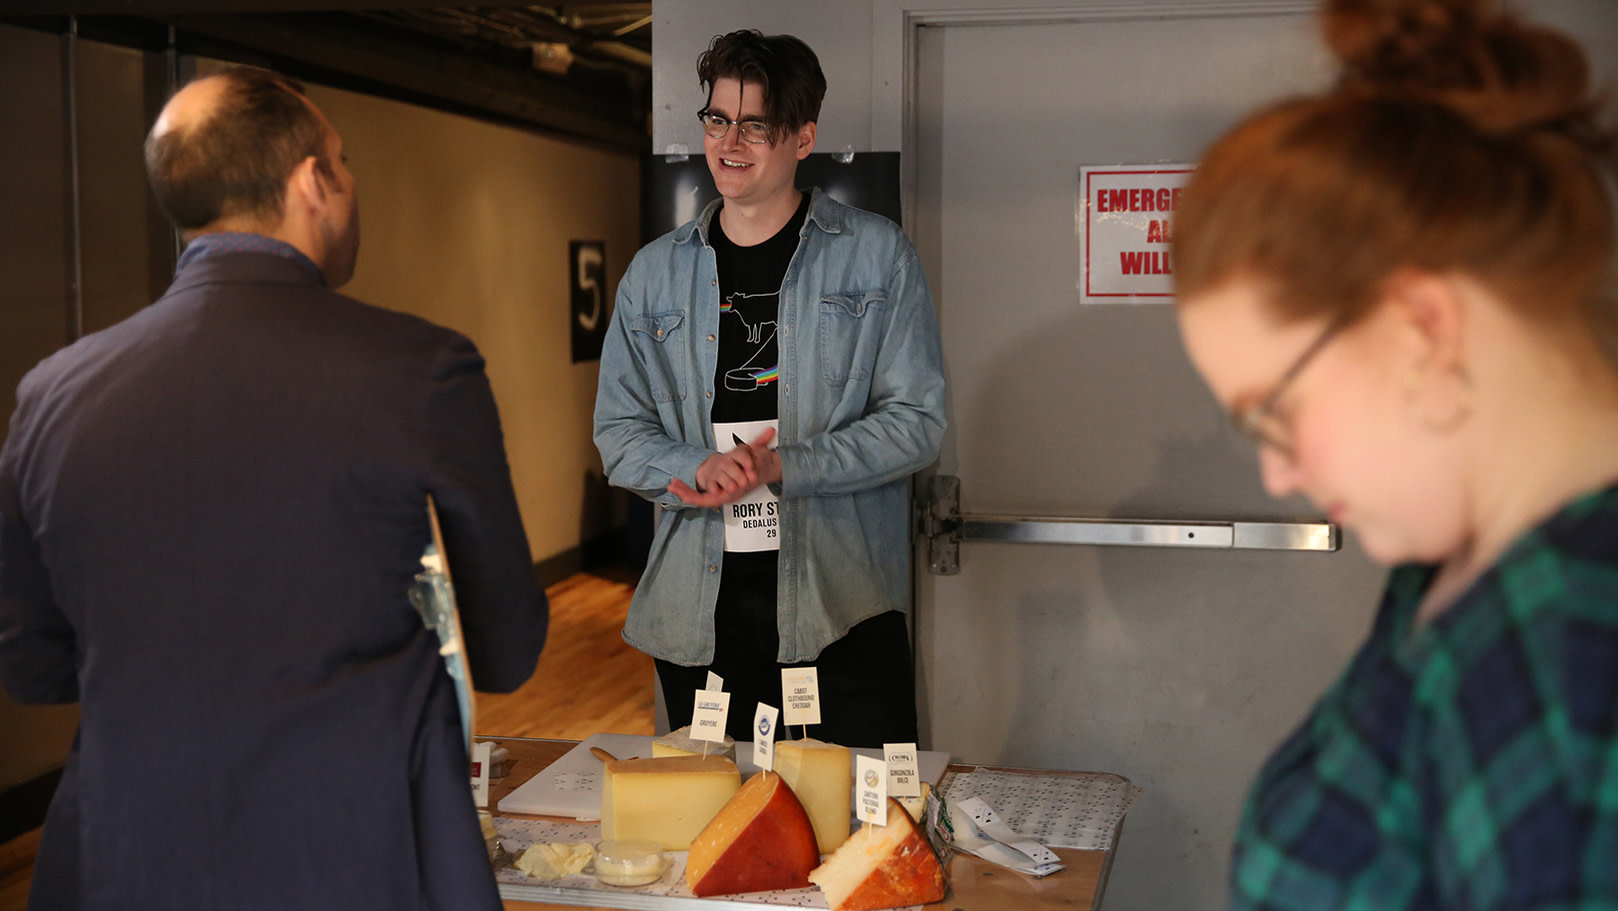 The winner of the 2018 Cheesemonger Invitational, Rory Stamp of Dedalus Wine in Burlington, Vermont, participates in the salesmanship portion of the competition. Judges grade the cheesemongers on their ability to answer customer questions and to articulate the tasting notes of various cheeses. Photo by Ellen Cronin.